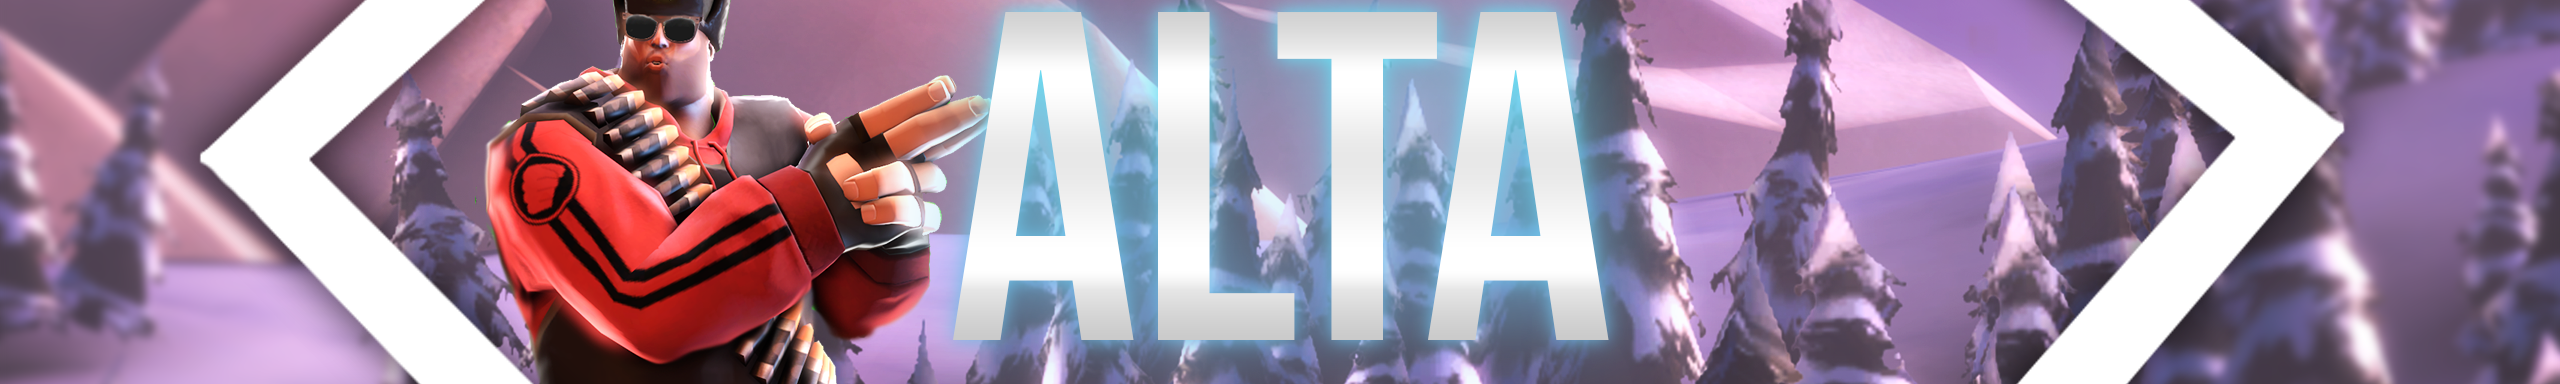 [Image: Banner_to_Alta.png]